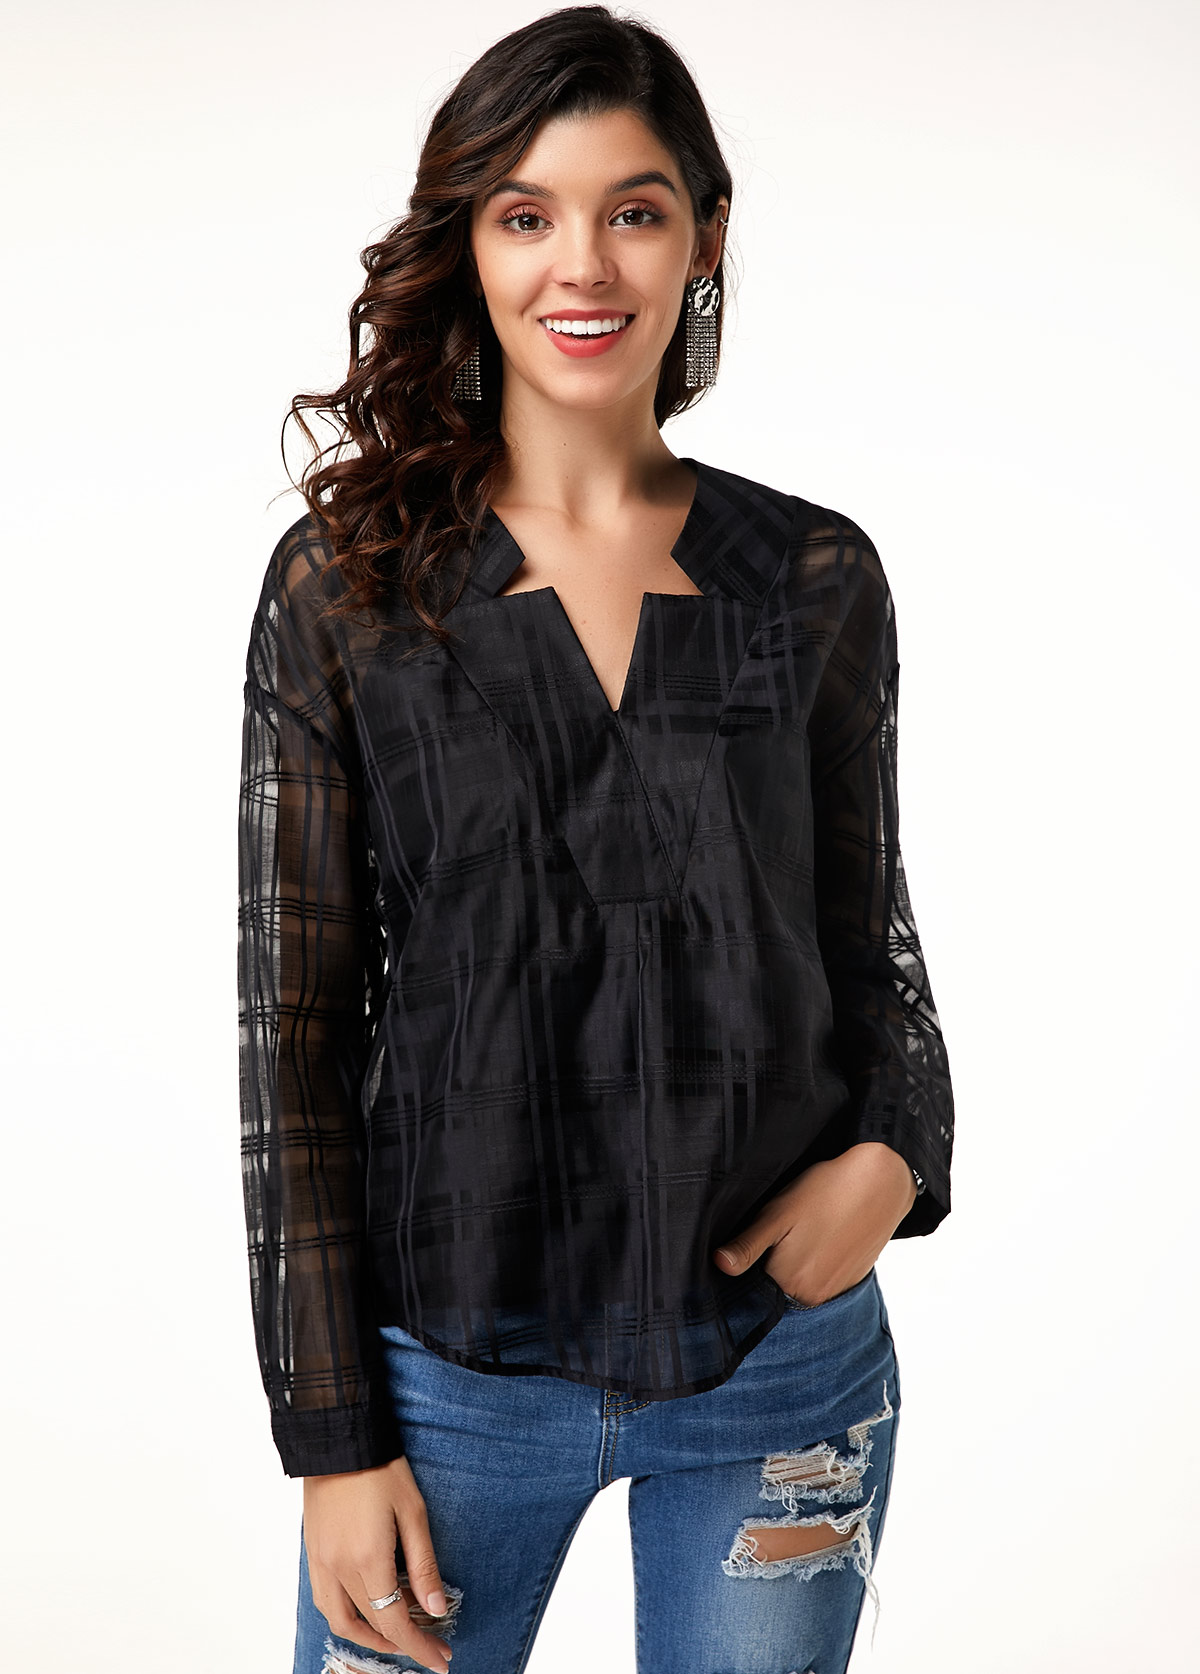 MODLILY DESIGNLong Sleeve Curved Hem Black Blouse